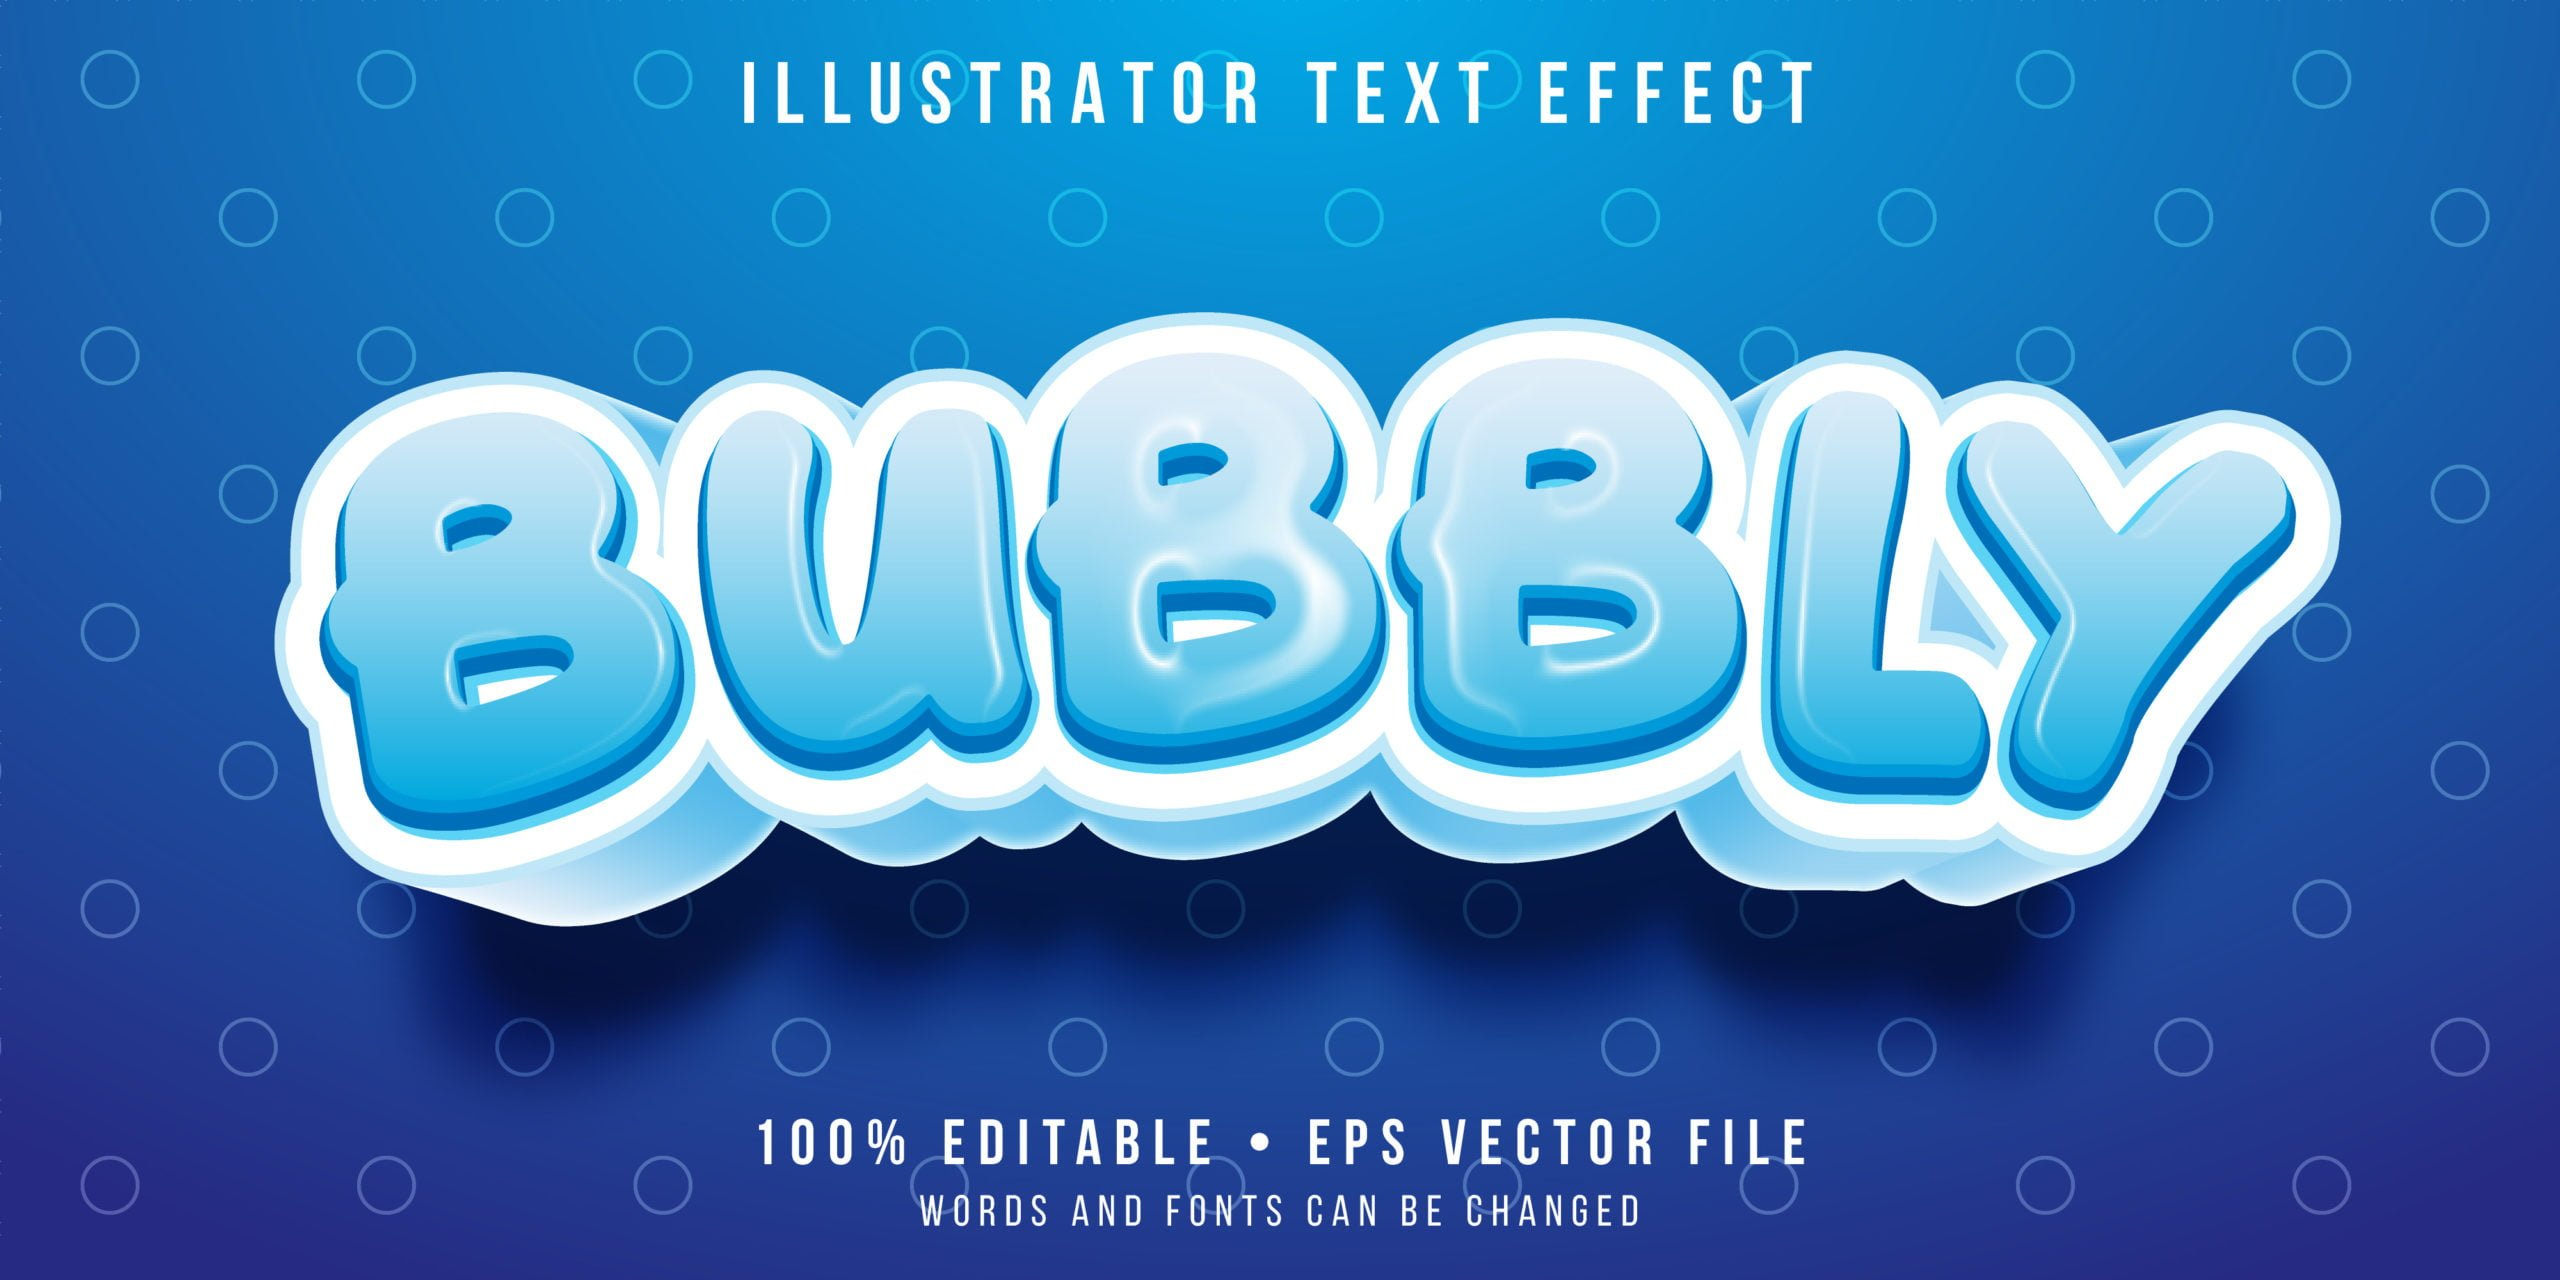 Eps text effect 02